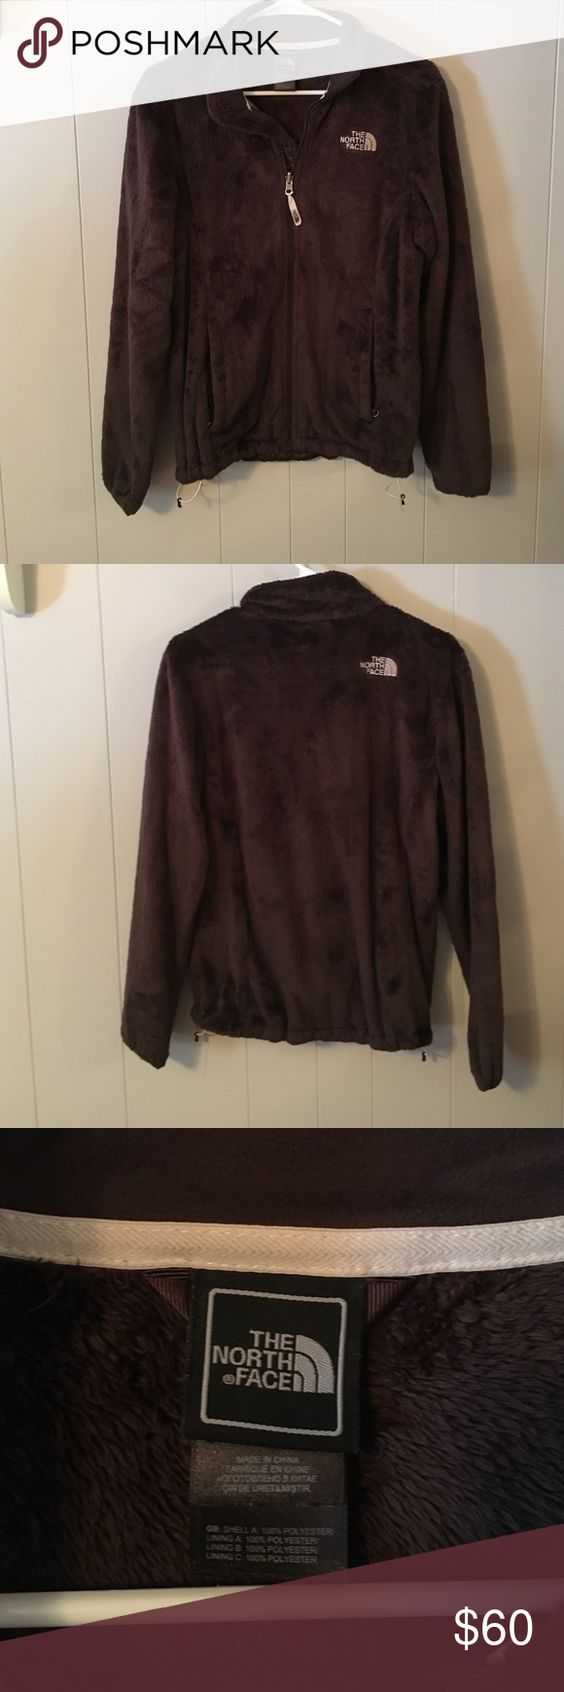 North Face Brown Furry Fleece Jacket North Face Brown Furry Fleece Jacket. Worn 2-3 times. Fantastic condition. The North Face Jackets & Coats